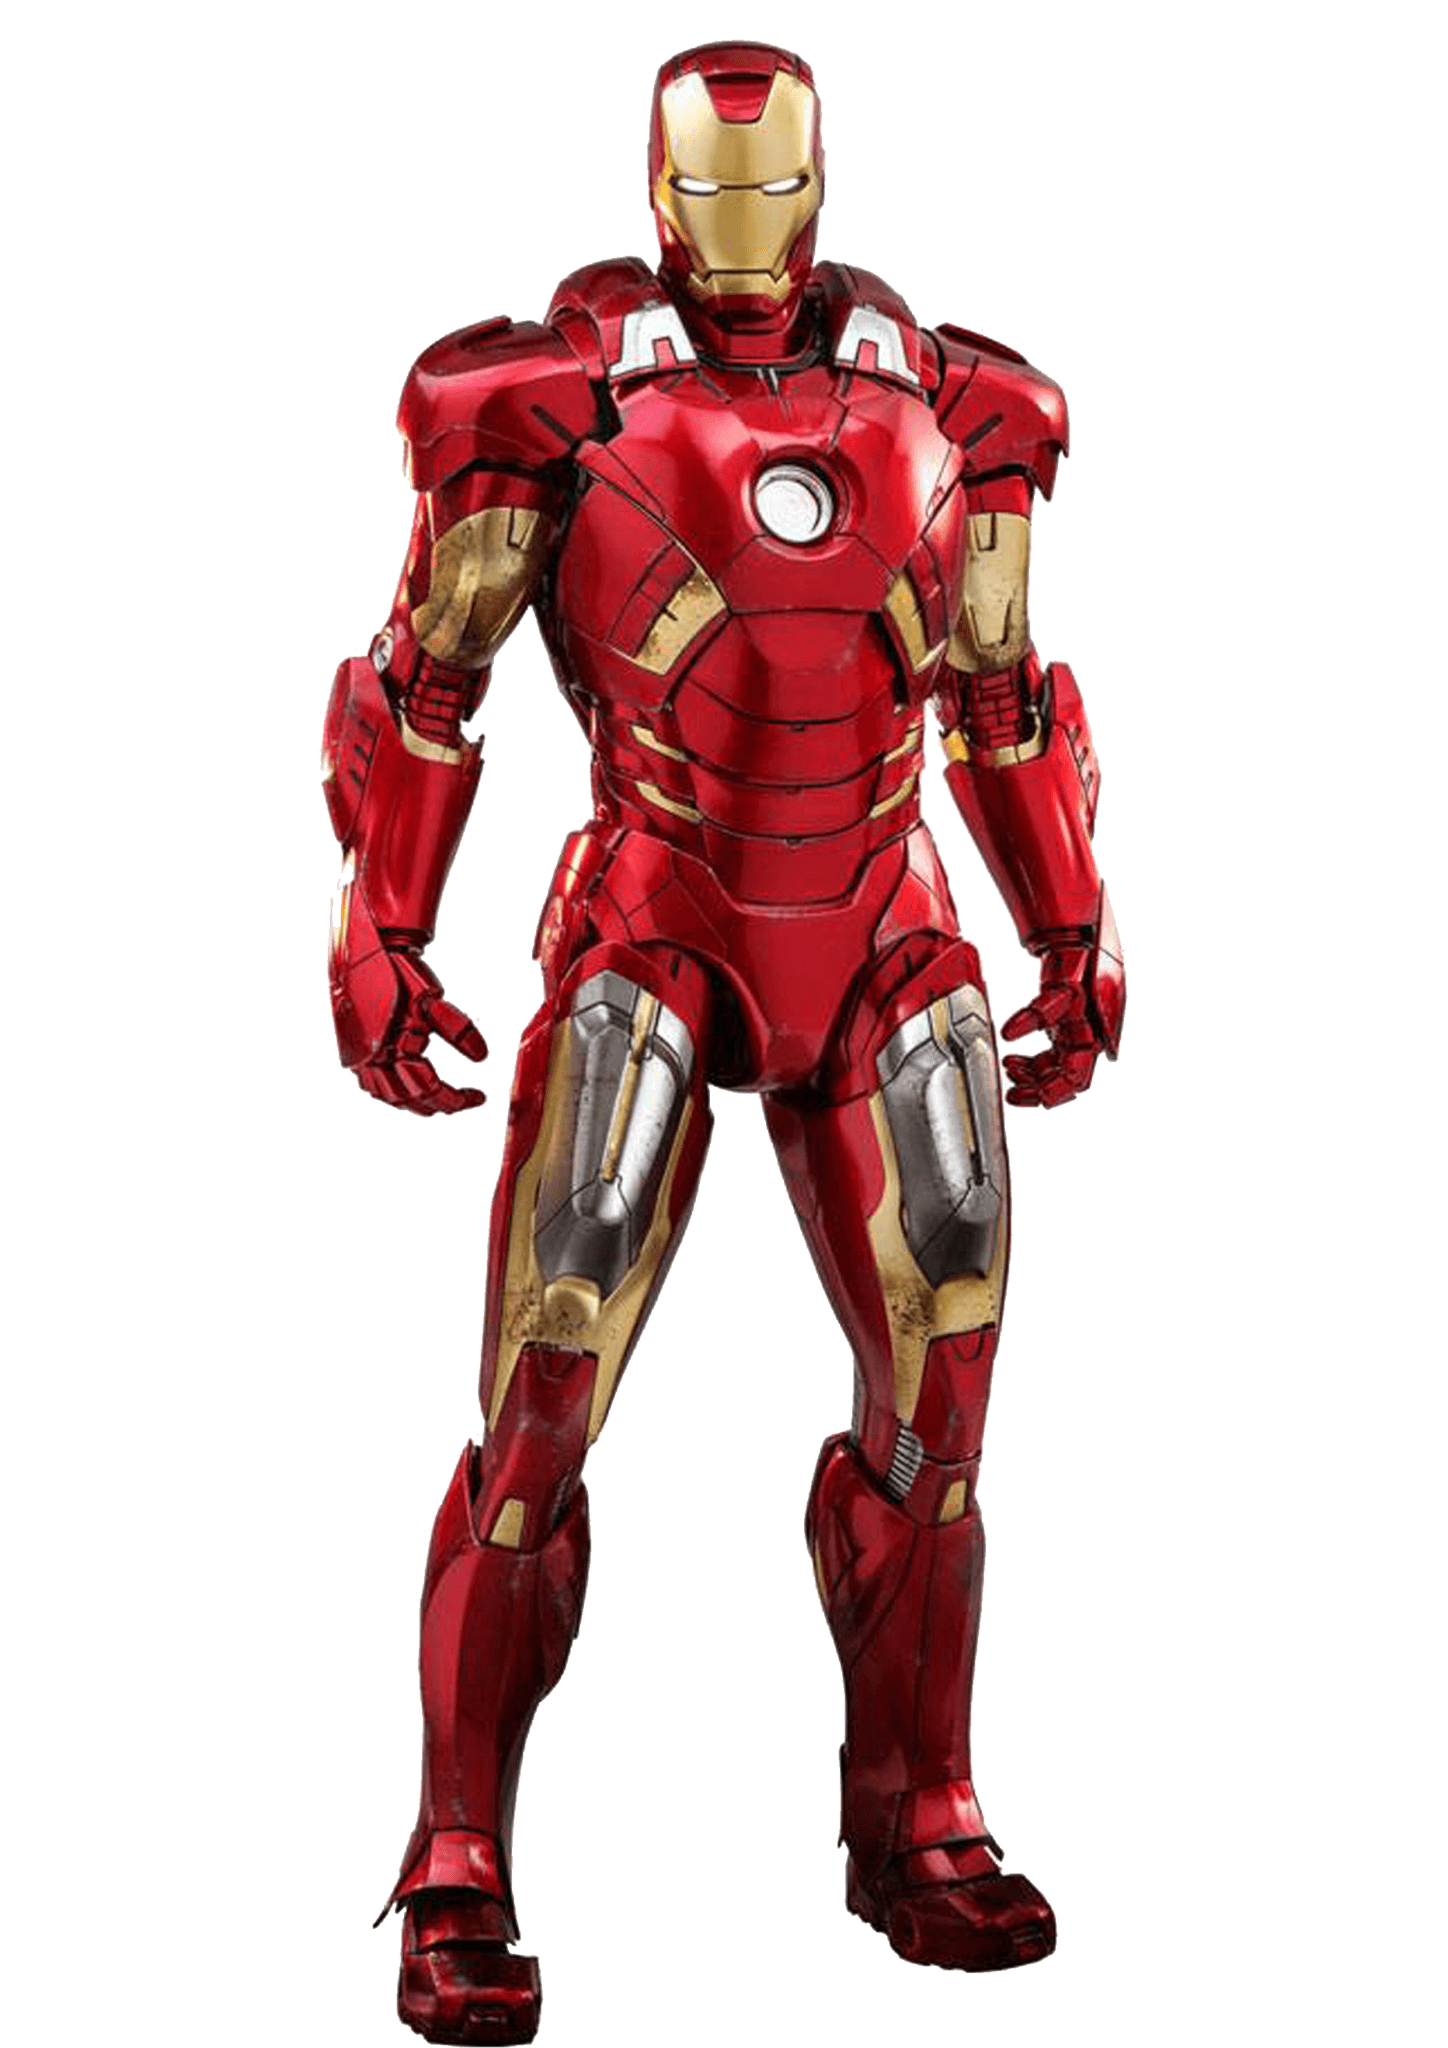 Iron Man Mark VII: The Avengers • Issue Number One Studios